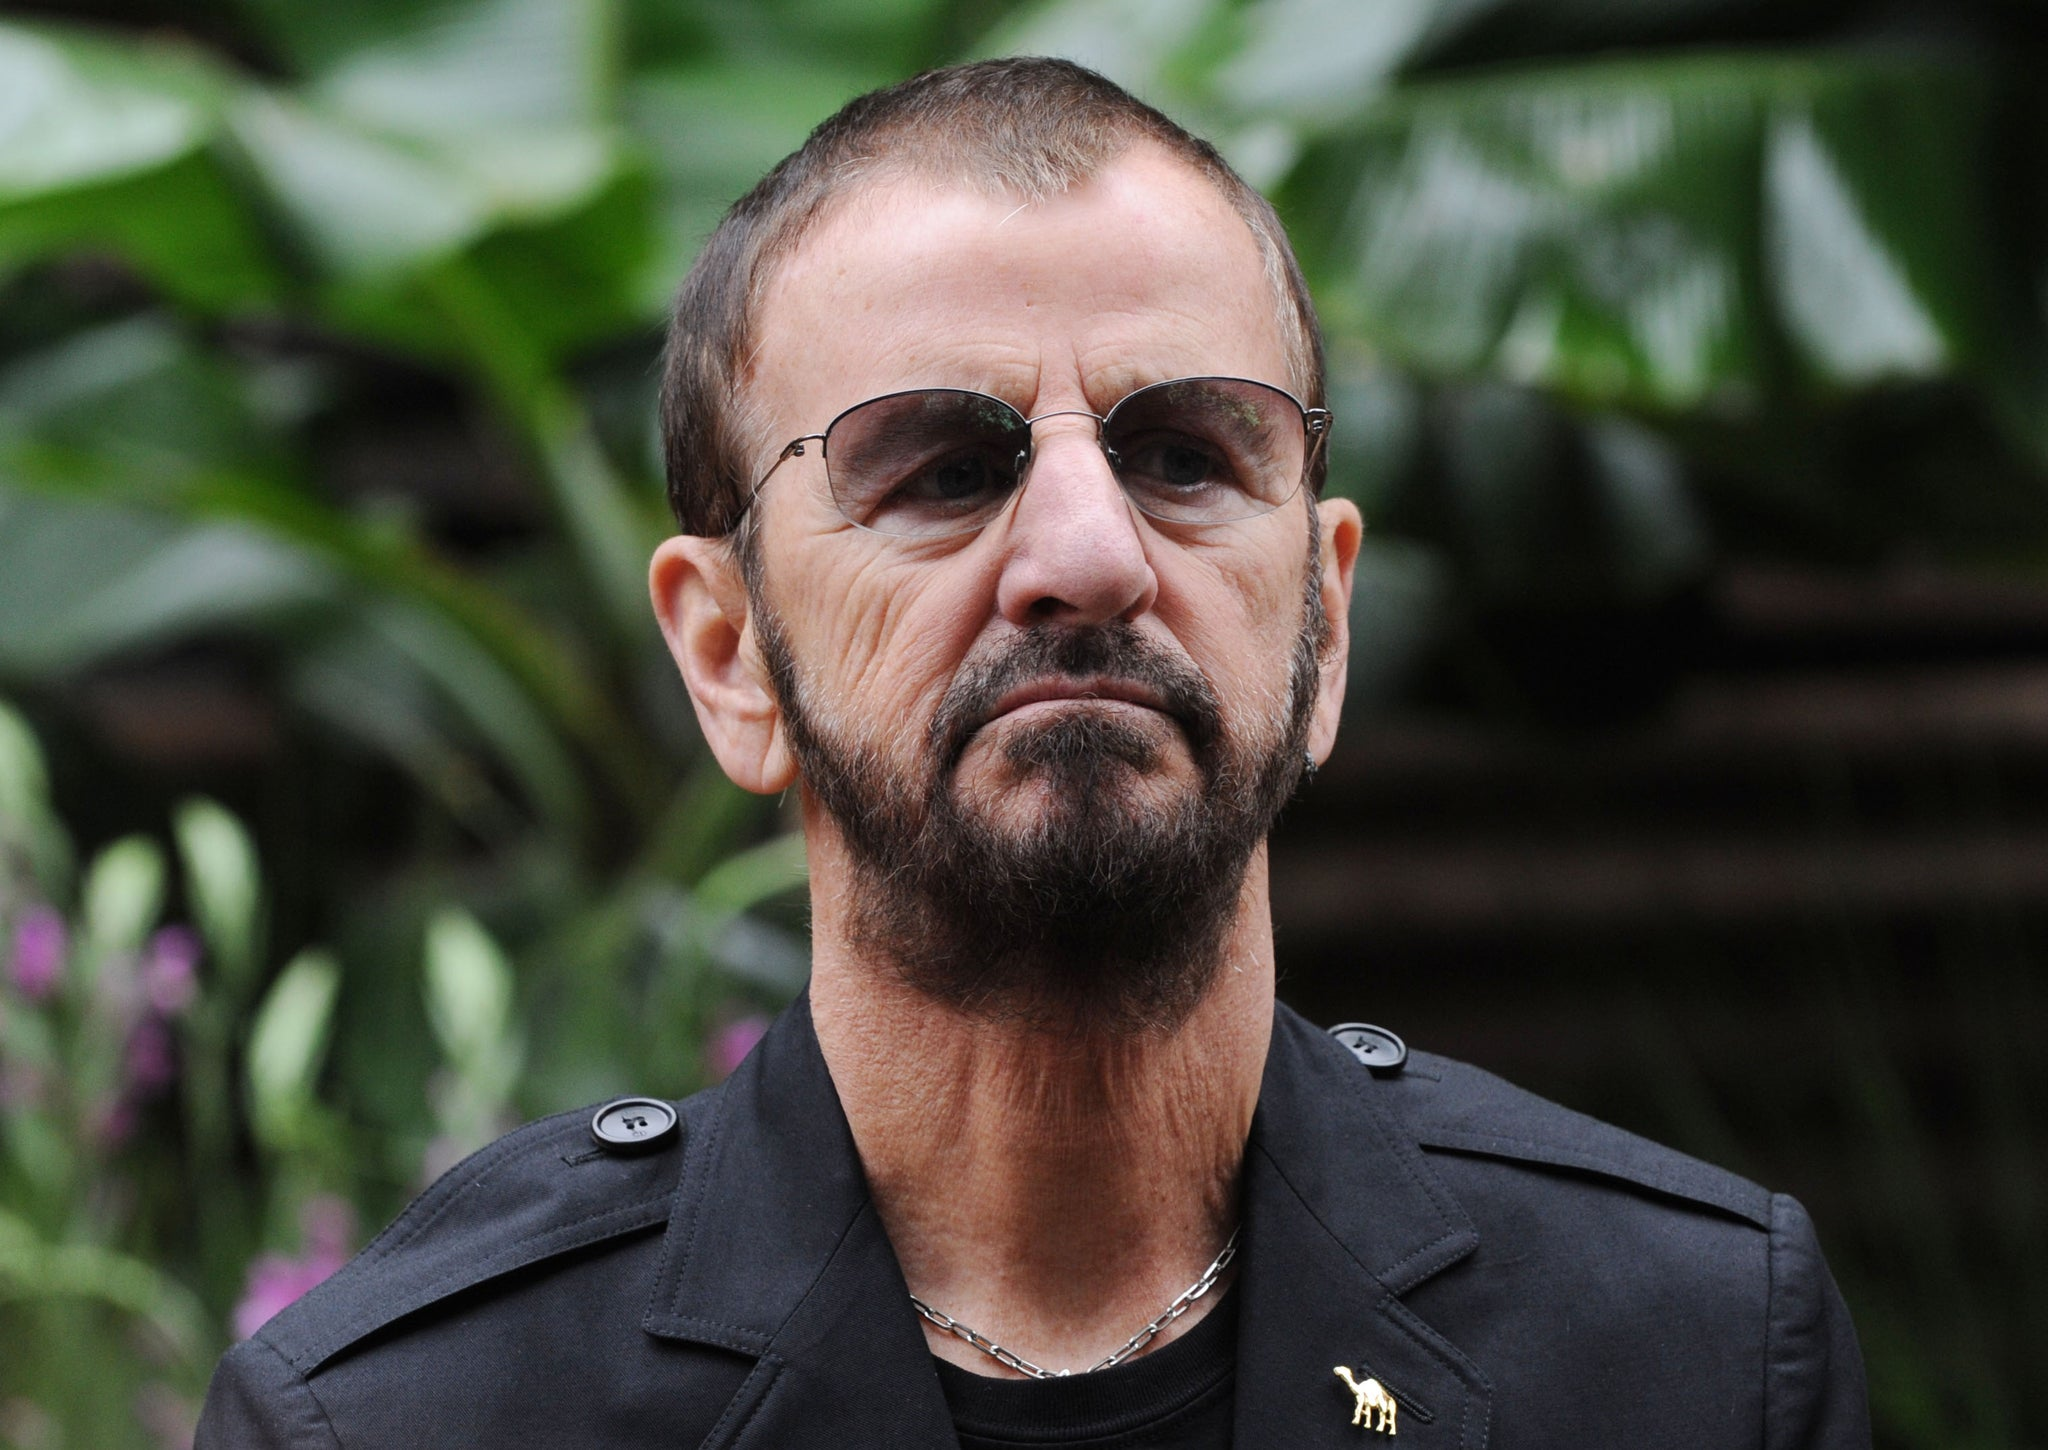 Ringo Starr Cast In Special Episode Of The Powerpuff Girls